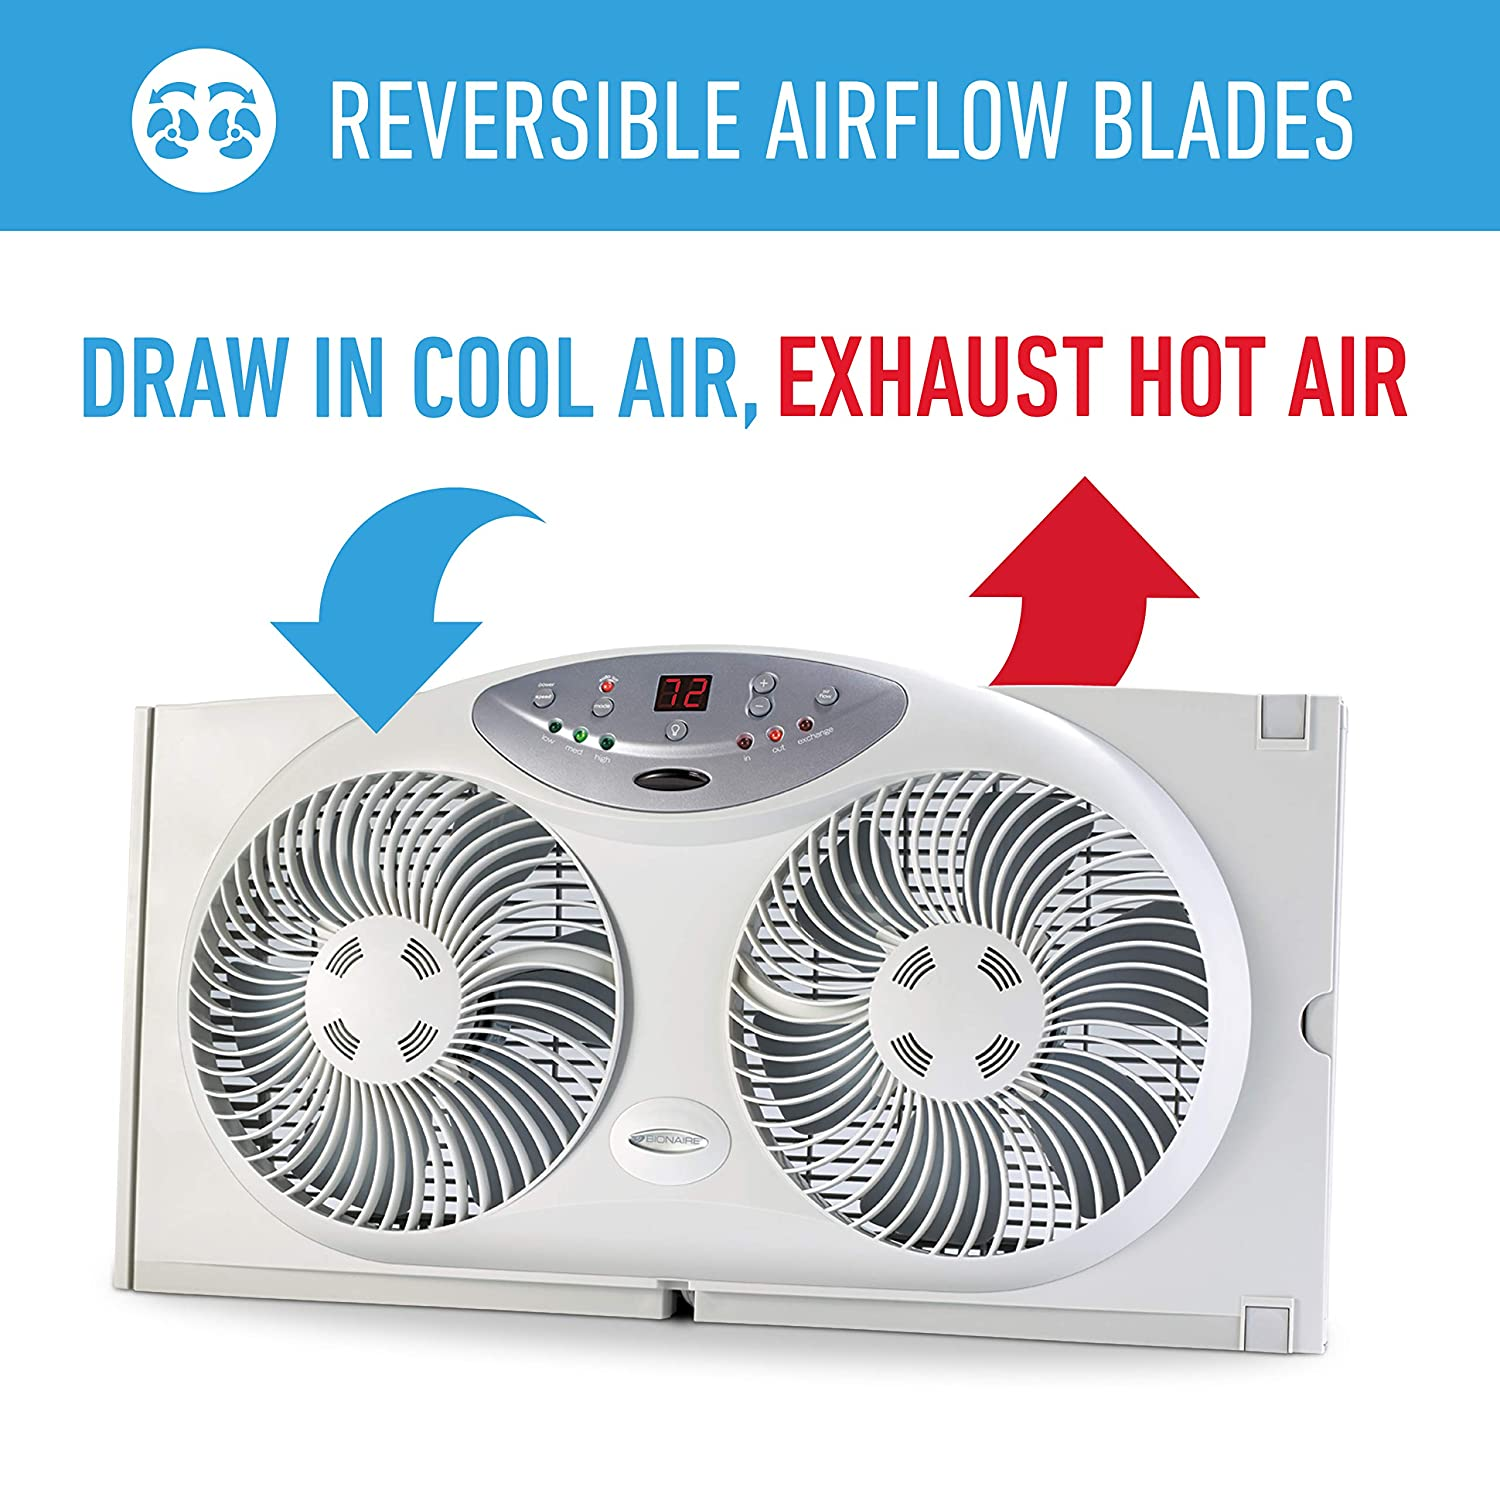 Bionaire Window Fan with Twin 8 5-Inch Reversible Airflow Blades and Remote  Control, White